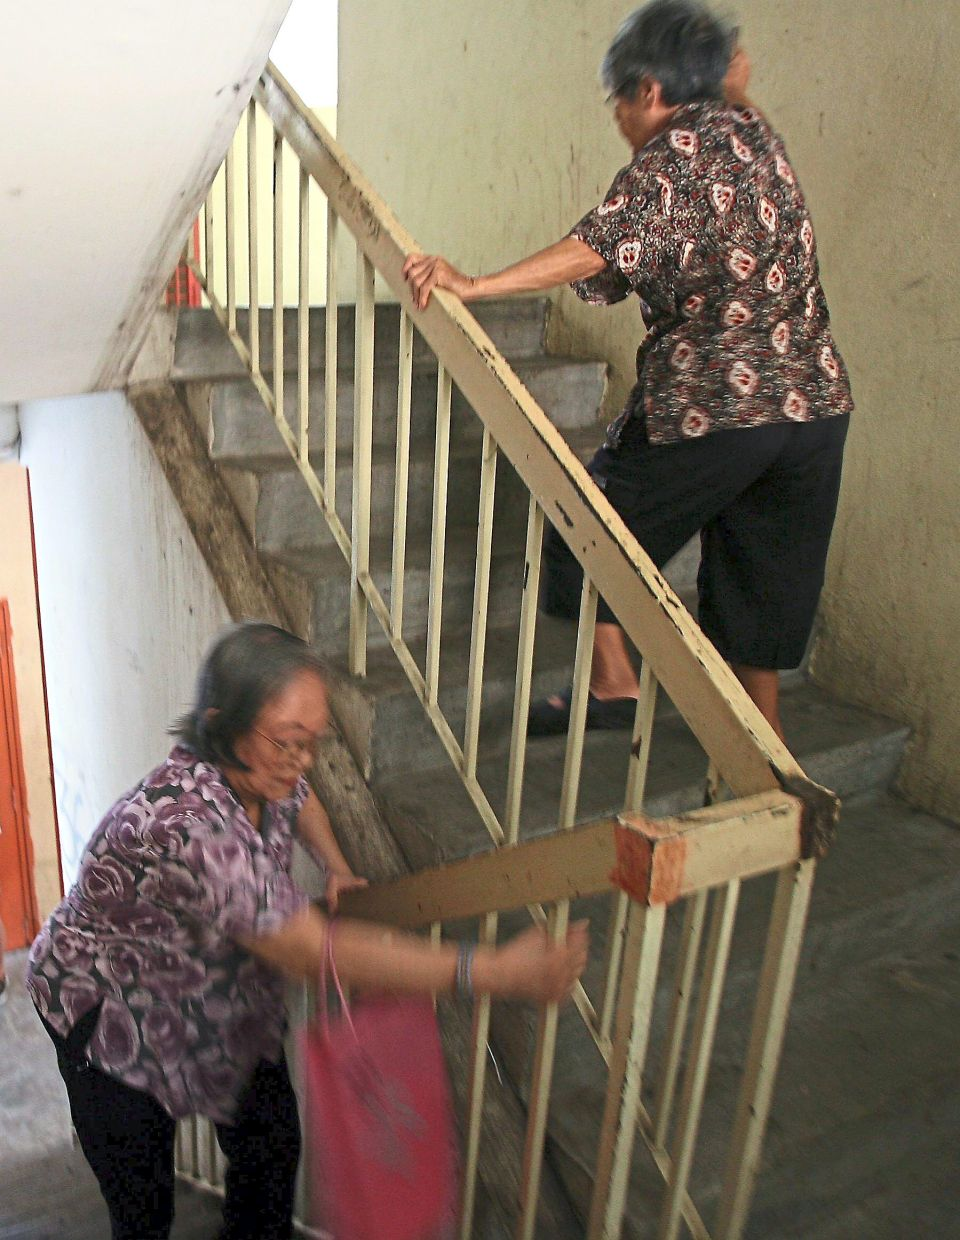 Holding the railing to go up and down stairs is important for many elderly folks to ensure that they do not lose balance. As such, it is important to regular disinfect those railings to ensure that they are virus-free. — Filepic